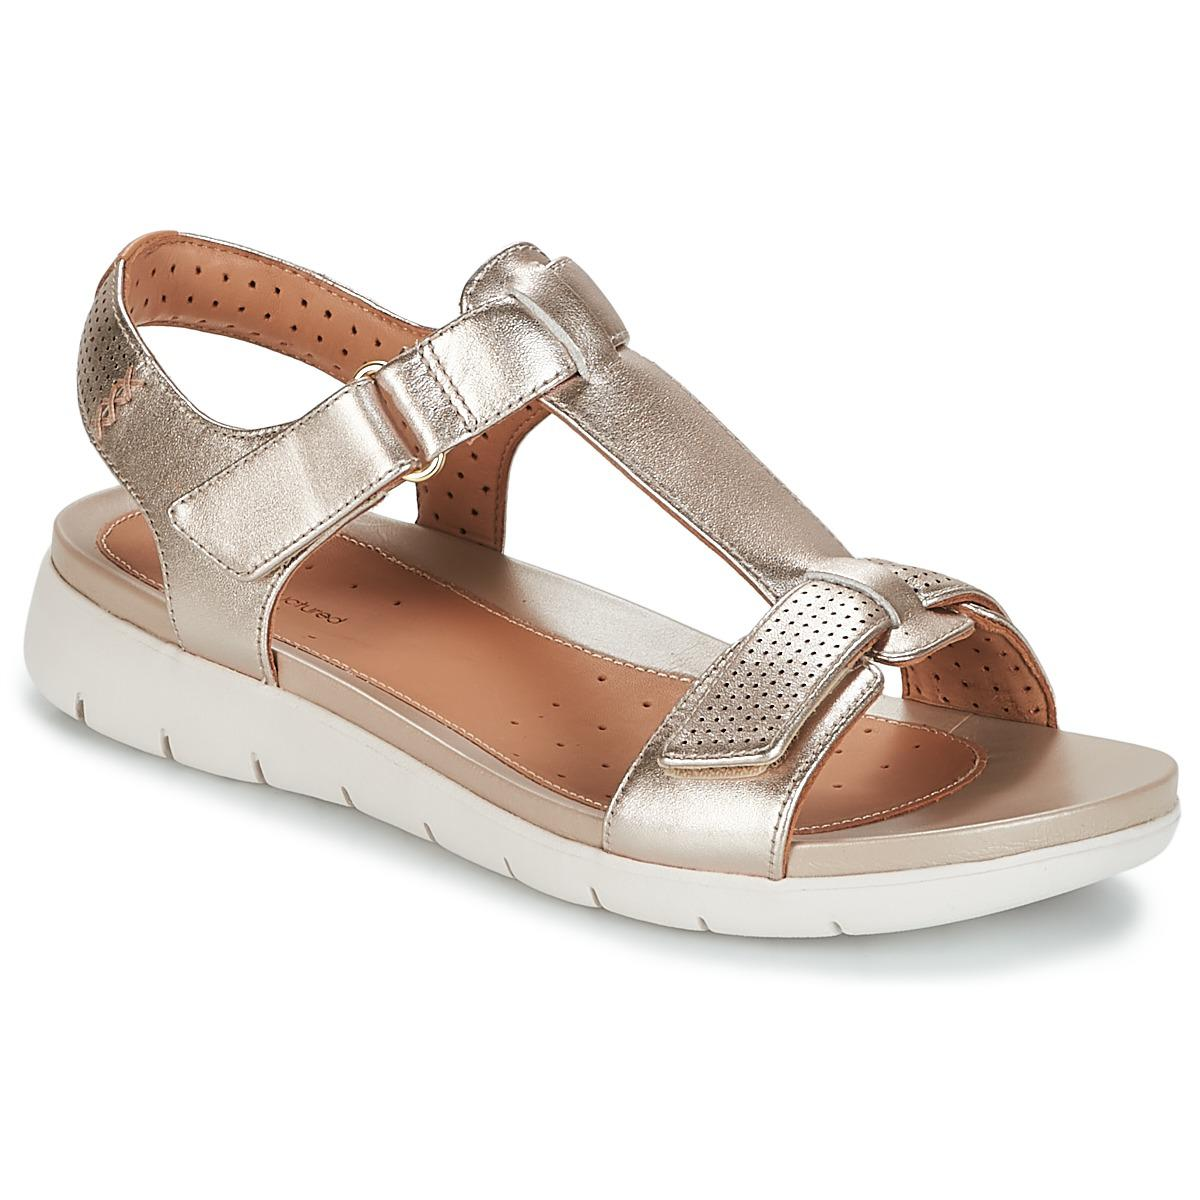 8c6da9485ee4 Gallery. Previously sold at  Spartoo · Women s Gold Sandals ...